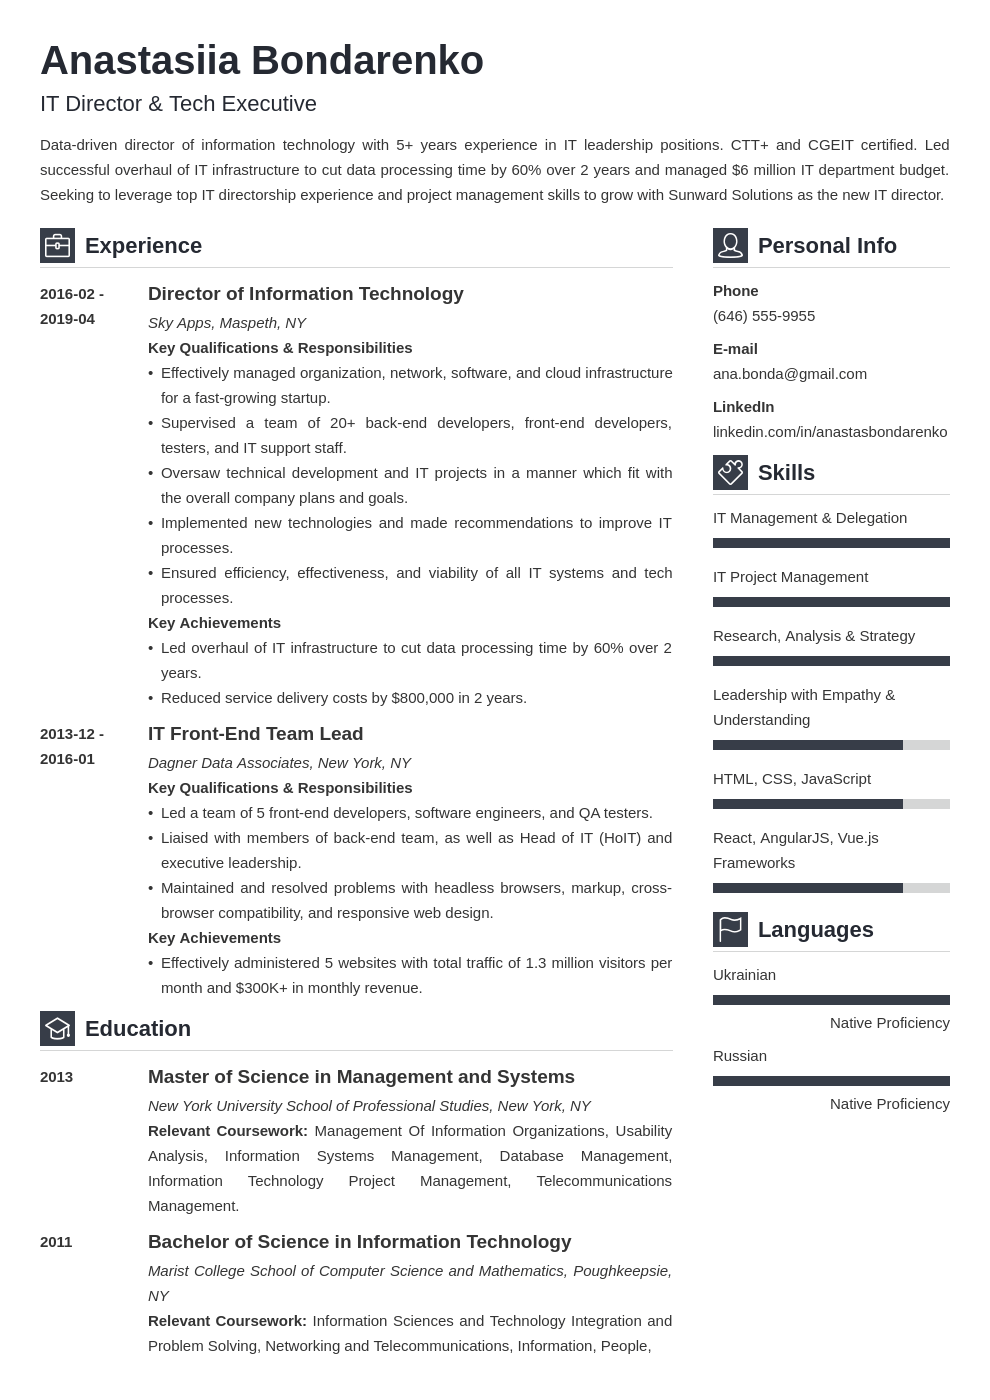 IT Director Resume: Sample & Writing Guide 20+ Tips